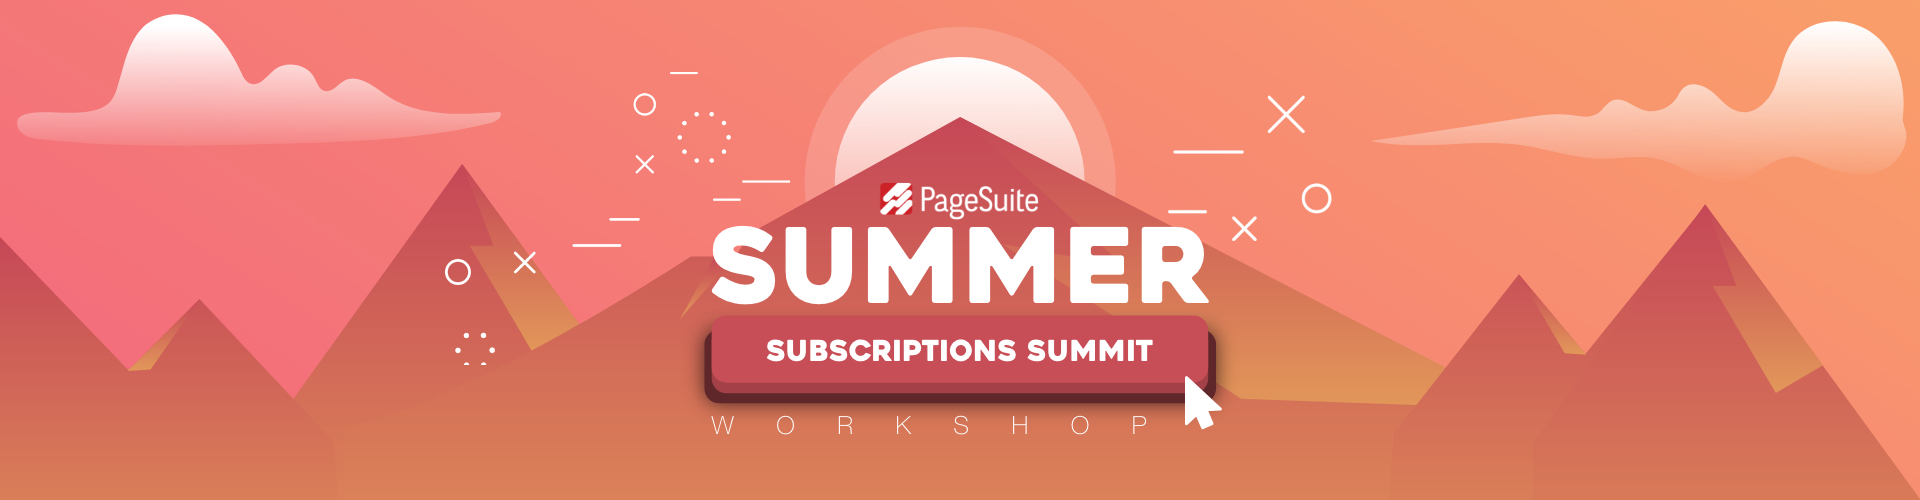 Header image of PageSuite's Summer Subscriptions Summit